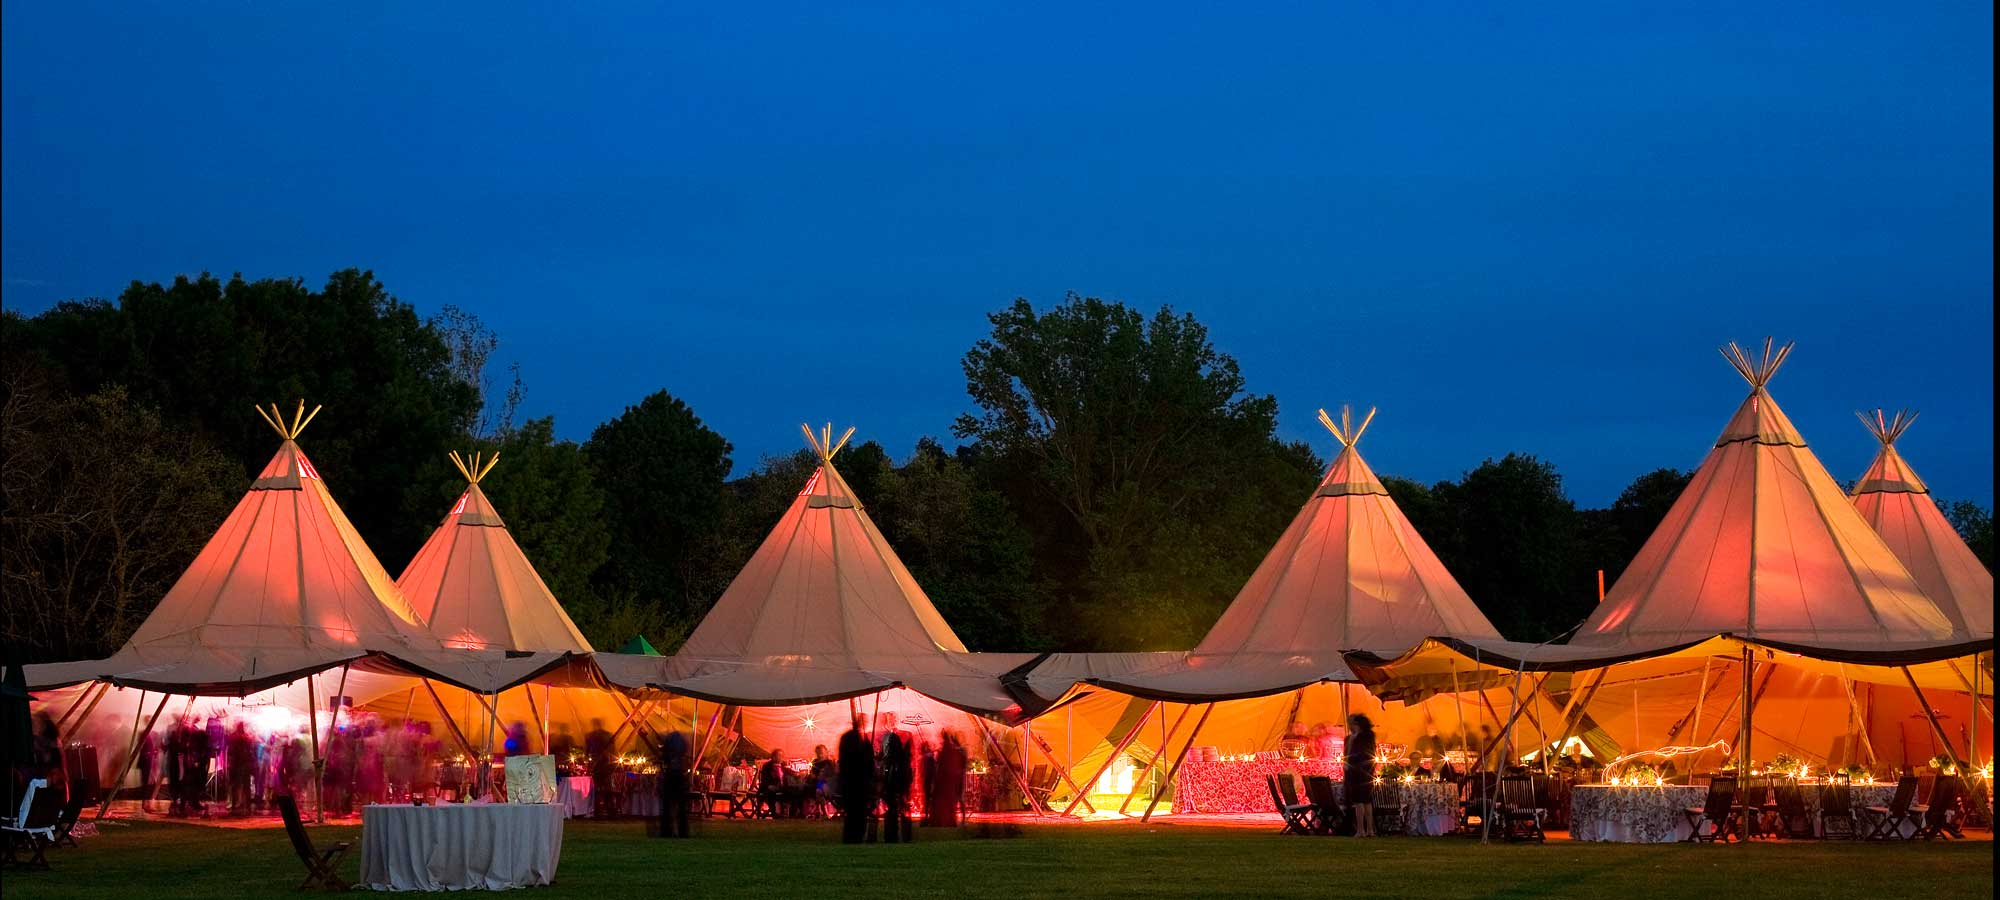 Tentipi multiple tipi build - event teepee for sale